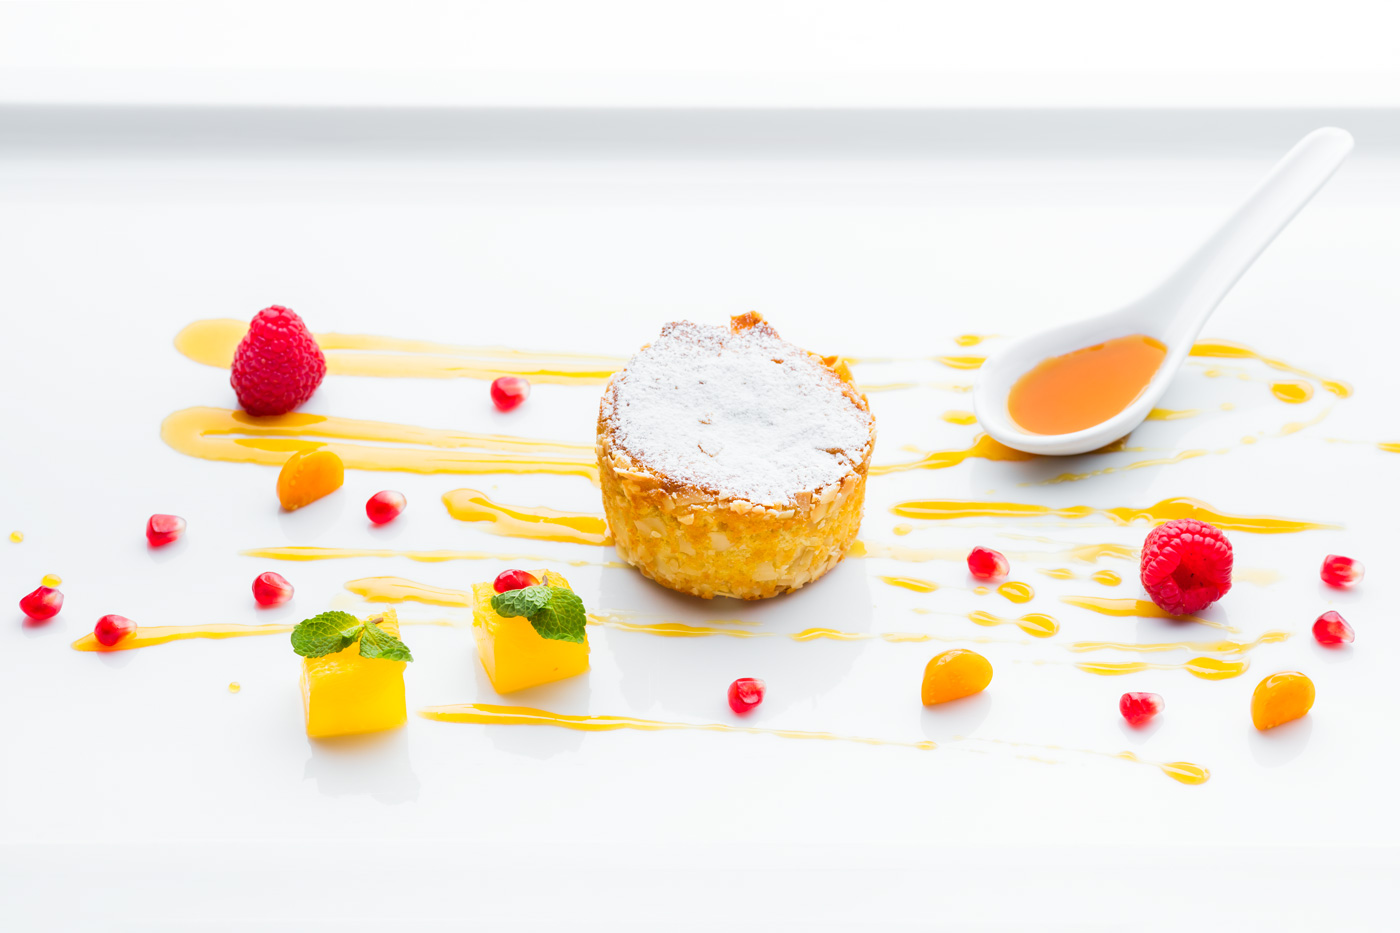 Plate with desert, cake and fruits